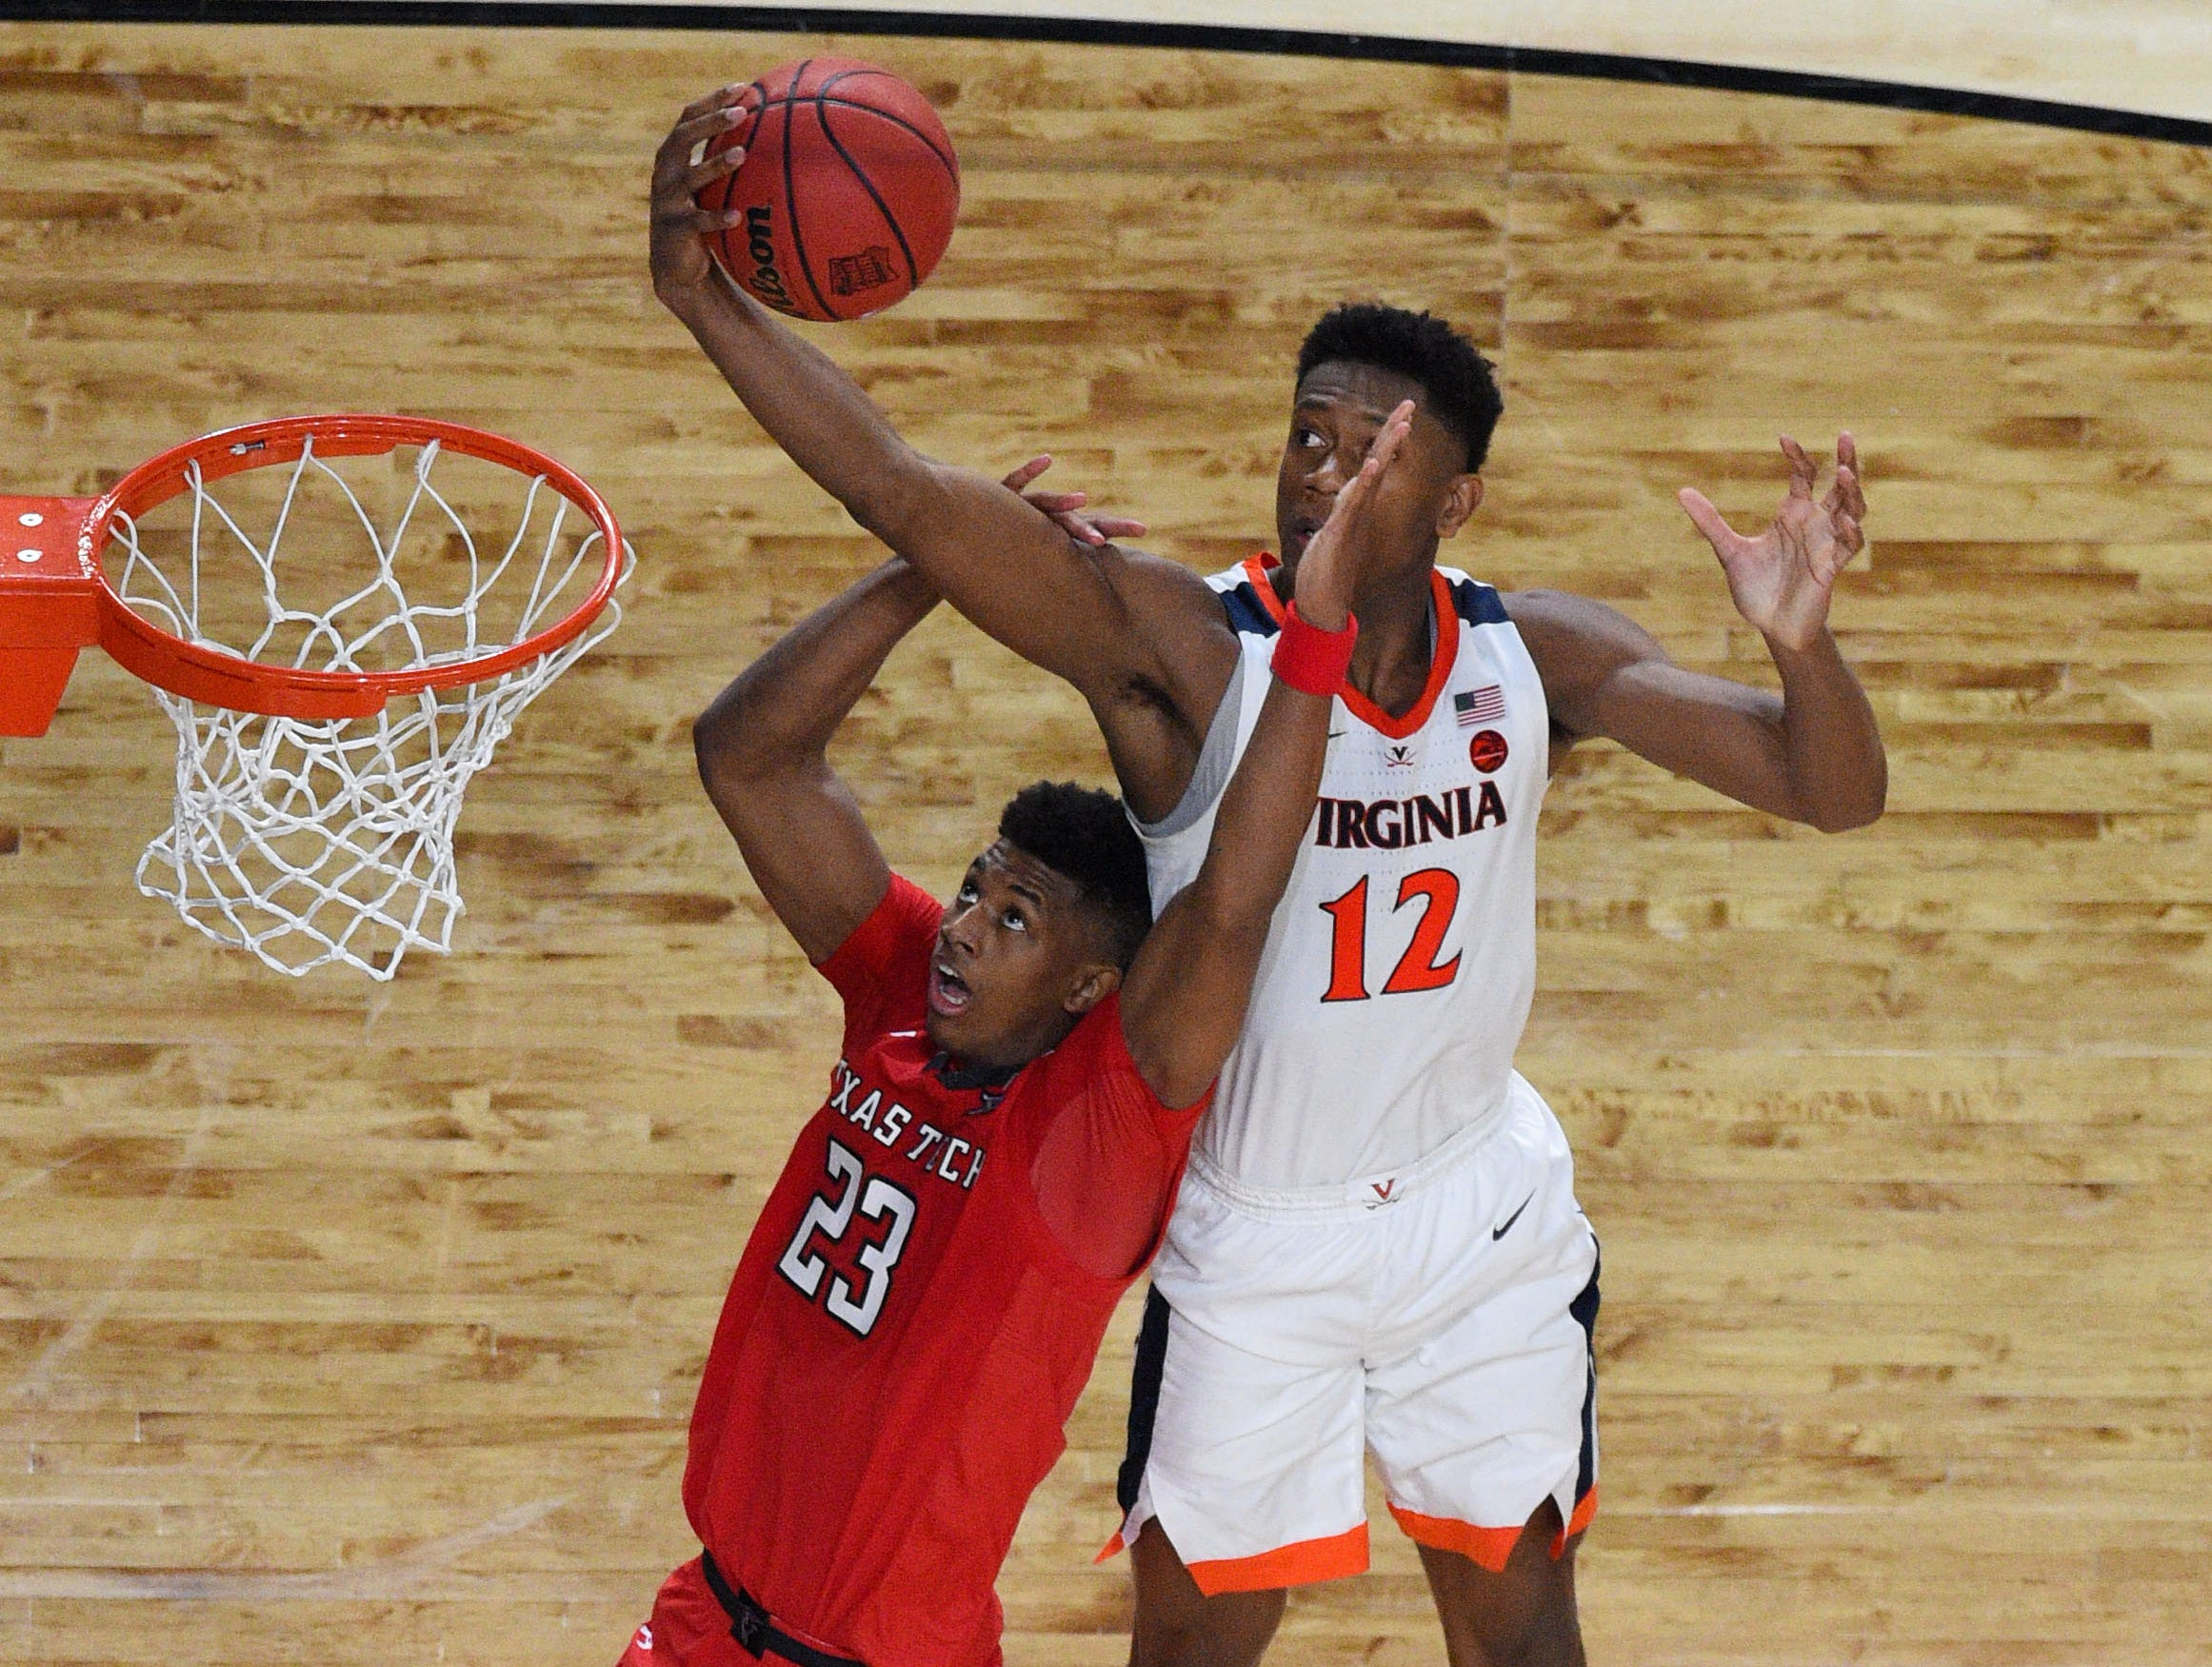 Apr 8, 2019; Minneapolis, MN, USA; Virginia Cavaliers guard De'Andre Hunter (12) reaches for the ball over Texas Tech Red Raiders guard Jarrett Culver (23) in overtime in the championship game of the 2019 men's Final Four at US Bank Stadium. Mandatory Credit: Robert Deutsch-USA TODAY Sports